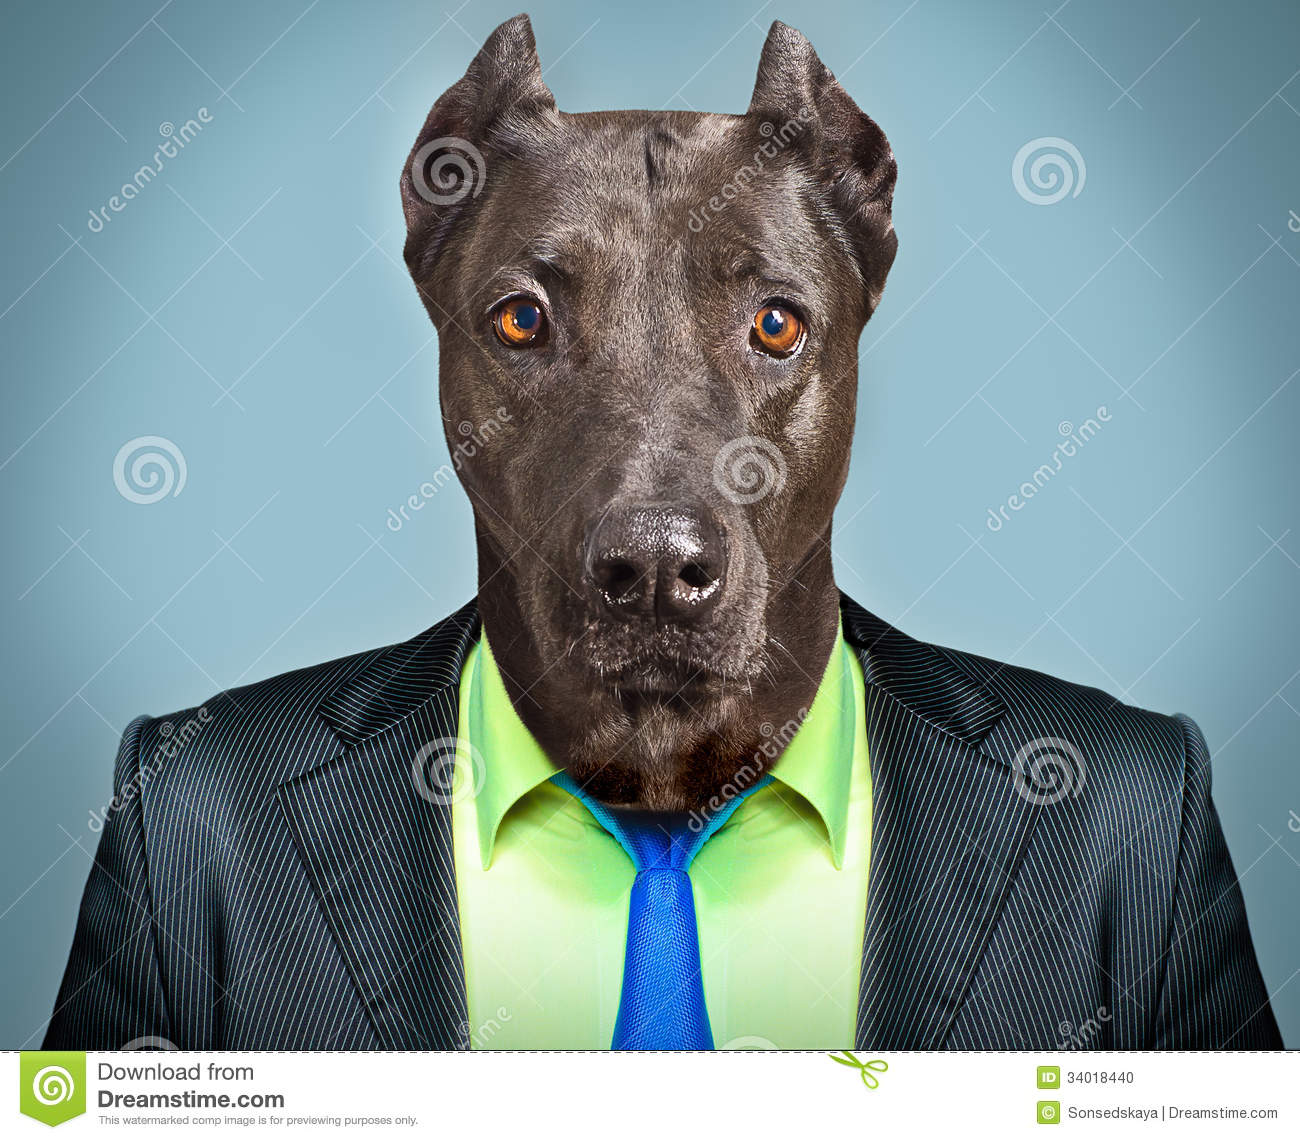 Dog in business suit